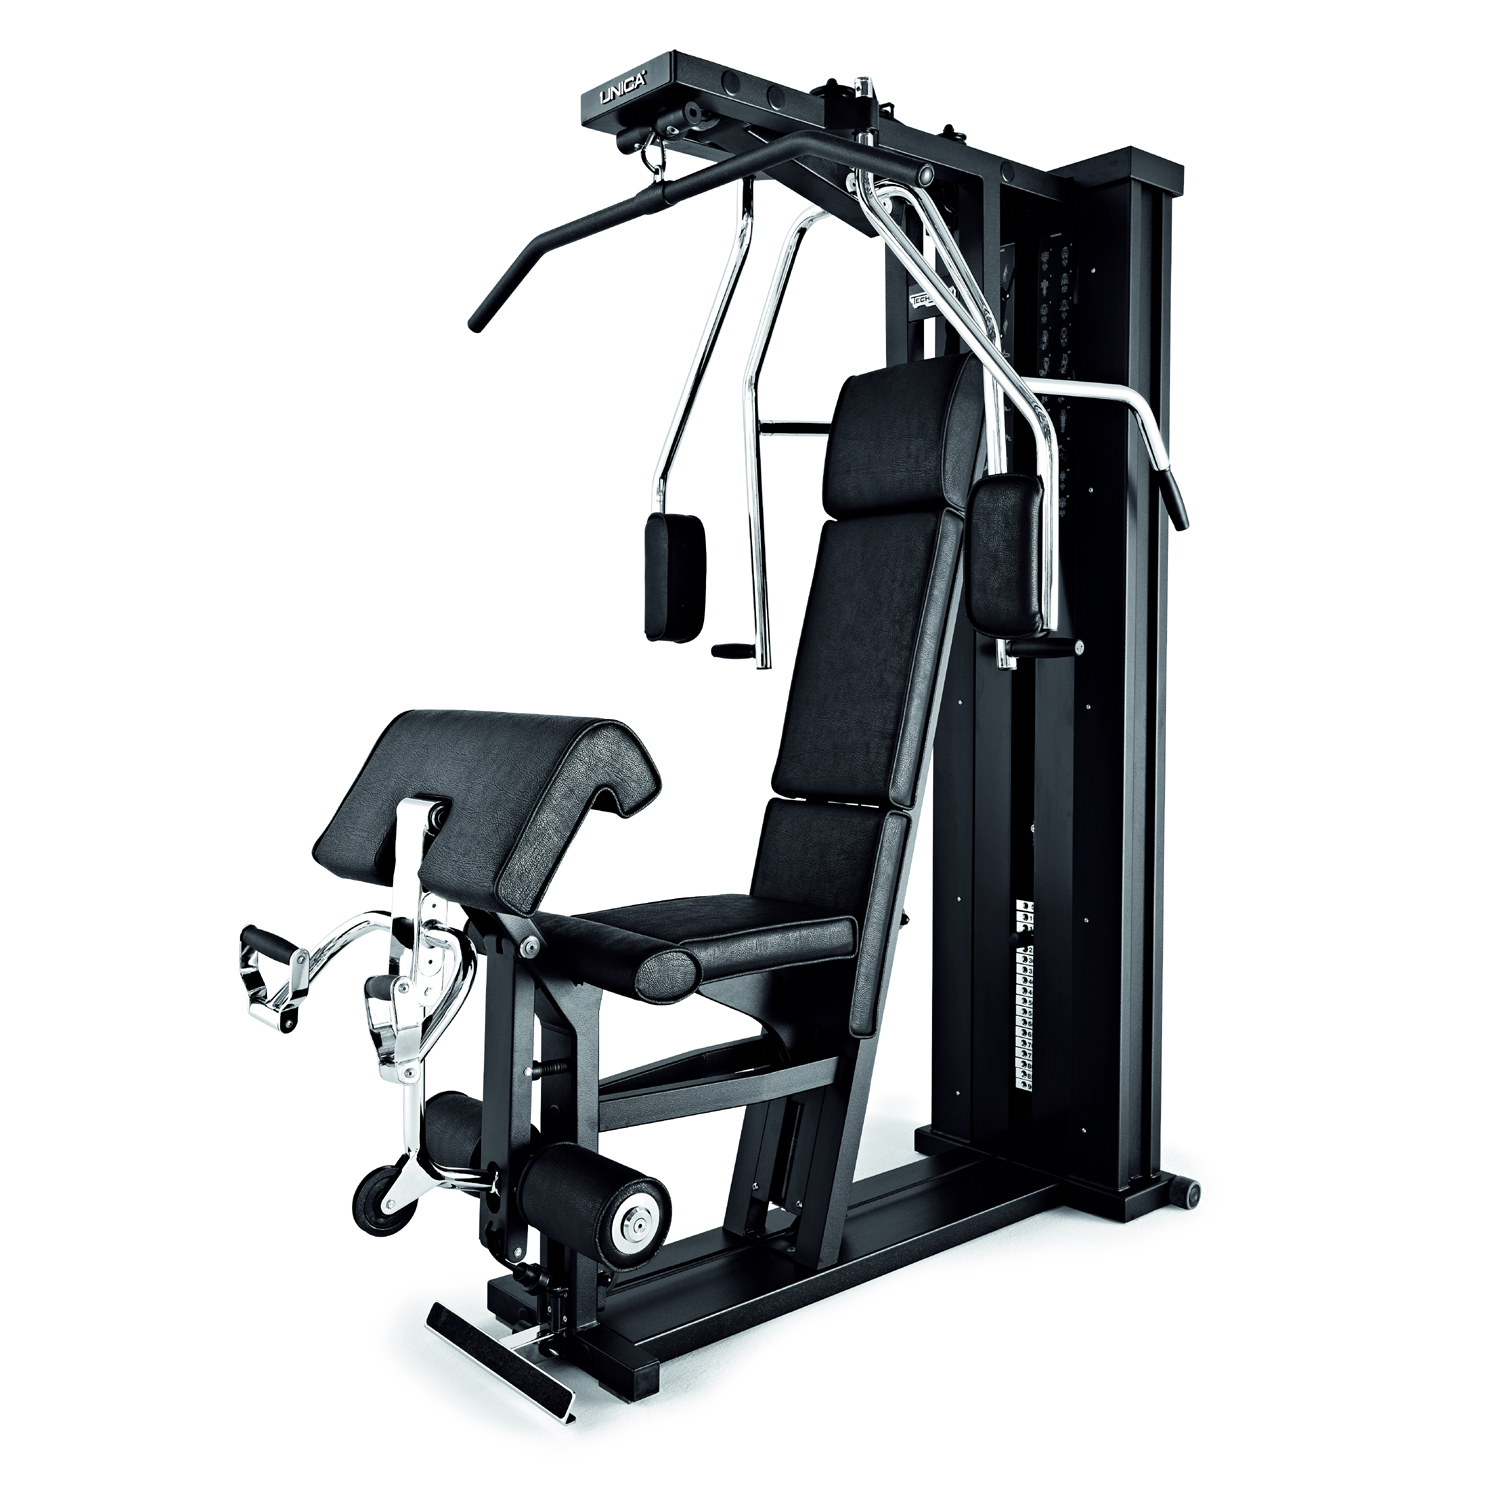 Technogym unica multigym from for Technogym all in one